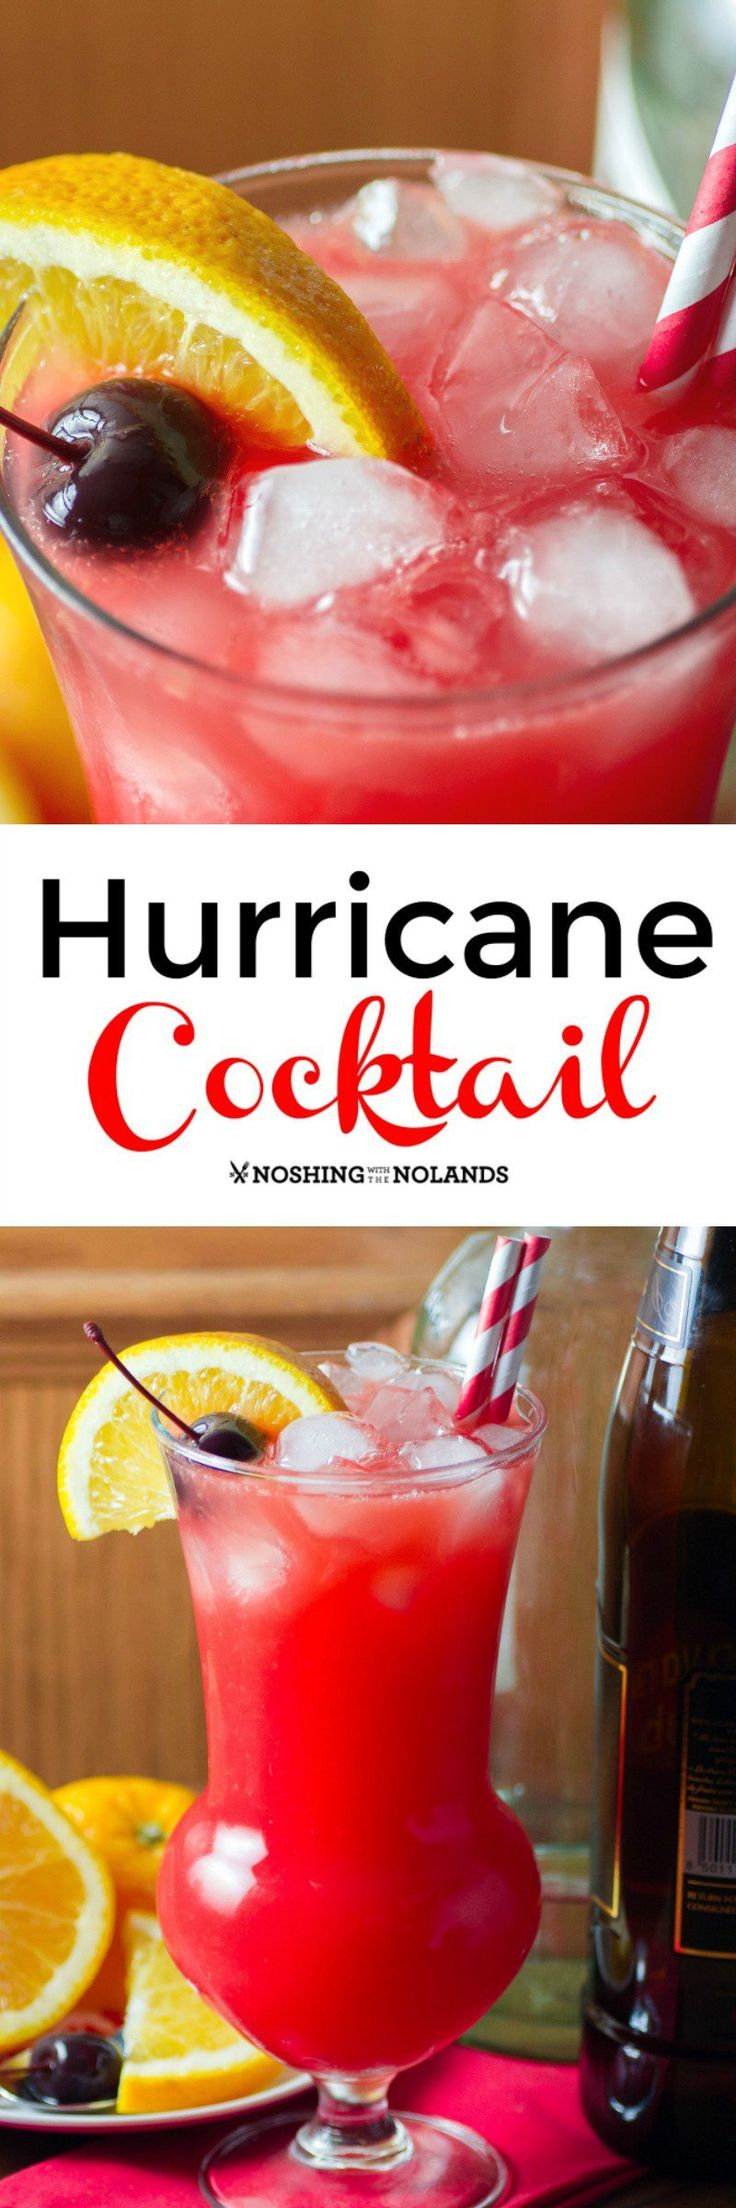 Hurricane Cocktail by Noshing With With The Nolands is a delectable combination of rums, grenadine and fruit juices that will take you away to the tropics with just one sip!